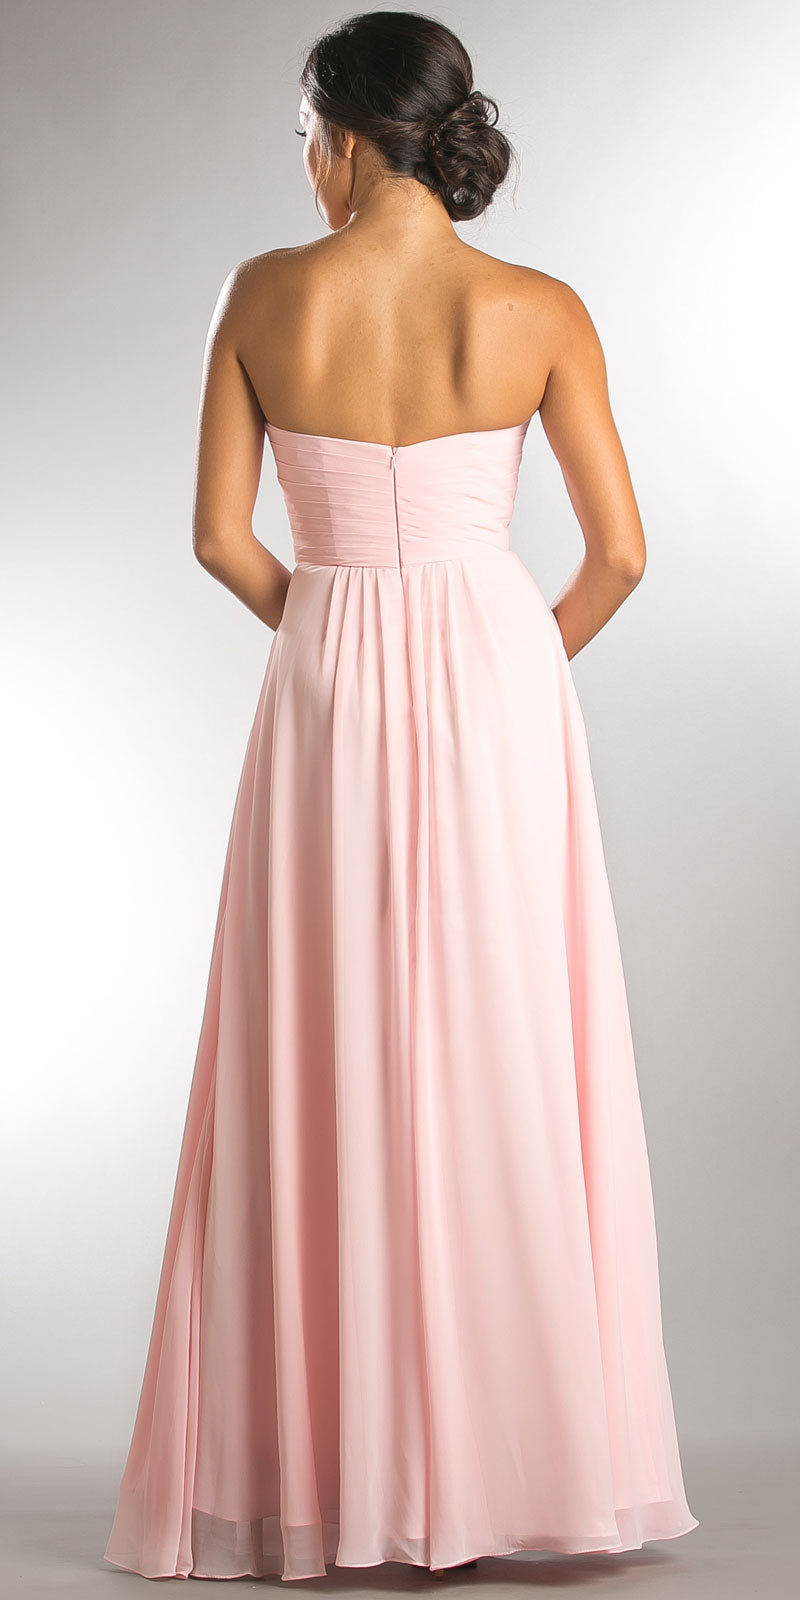 Image of Strapless Pleated Overlap Bust Long Bridesmaid Dress back in Blush